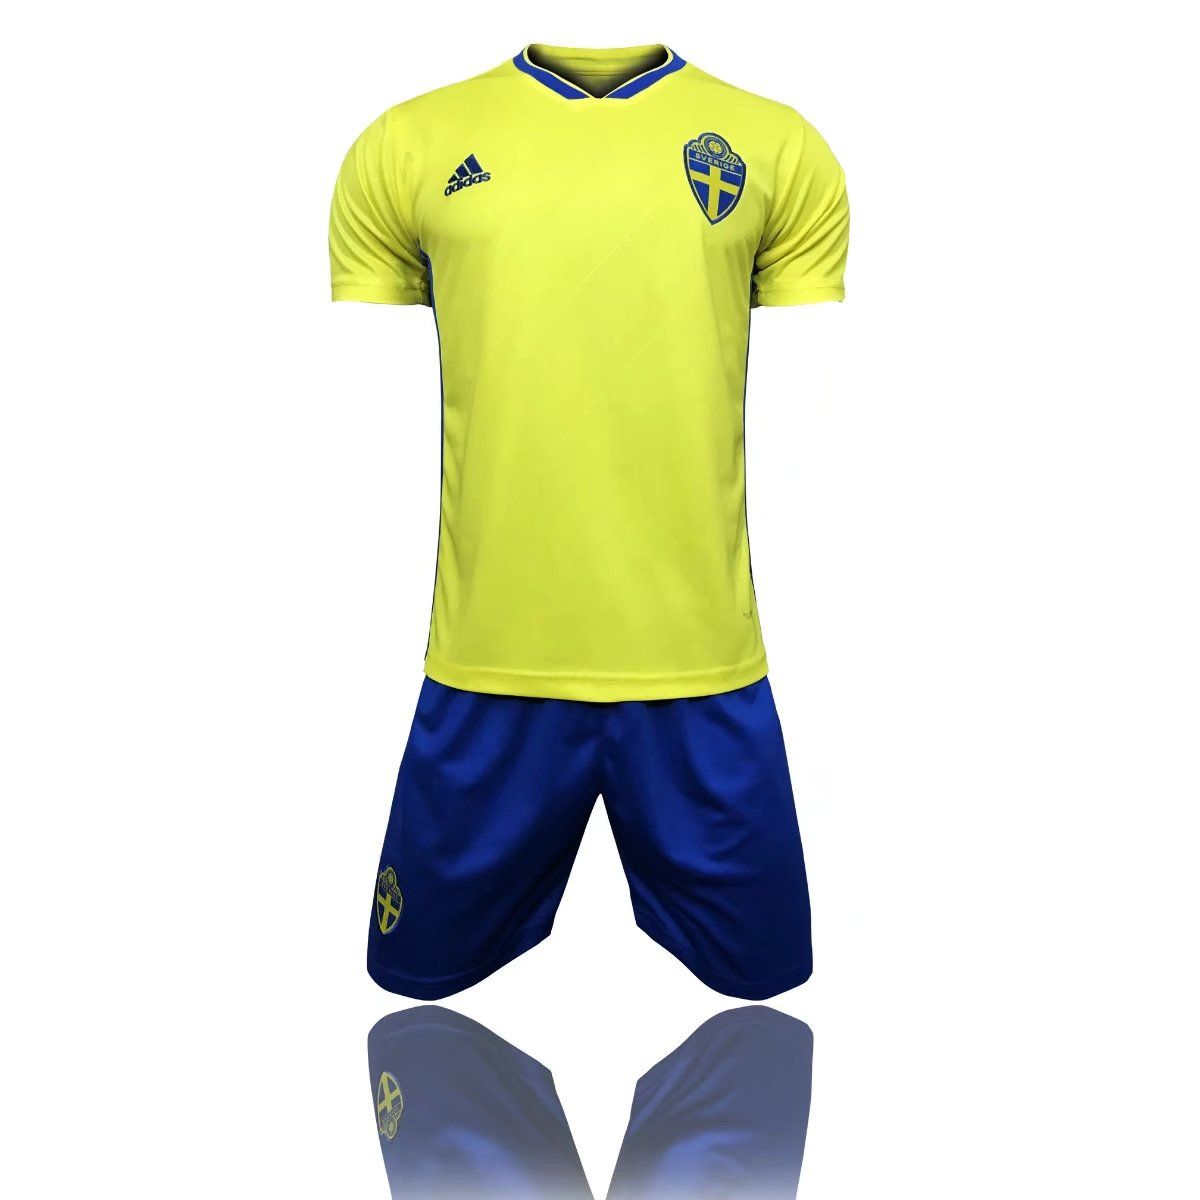 11.99 usd 2018 Adult Sweden Home Yellow Soccer Jersey Uniforms Russia World  Cup Football Team Kits Custom Name Number b54f53491